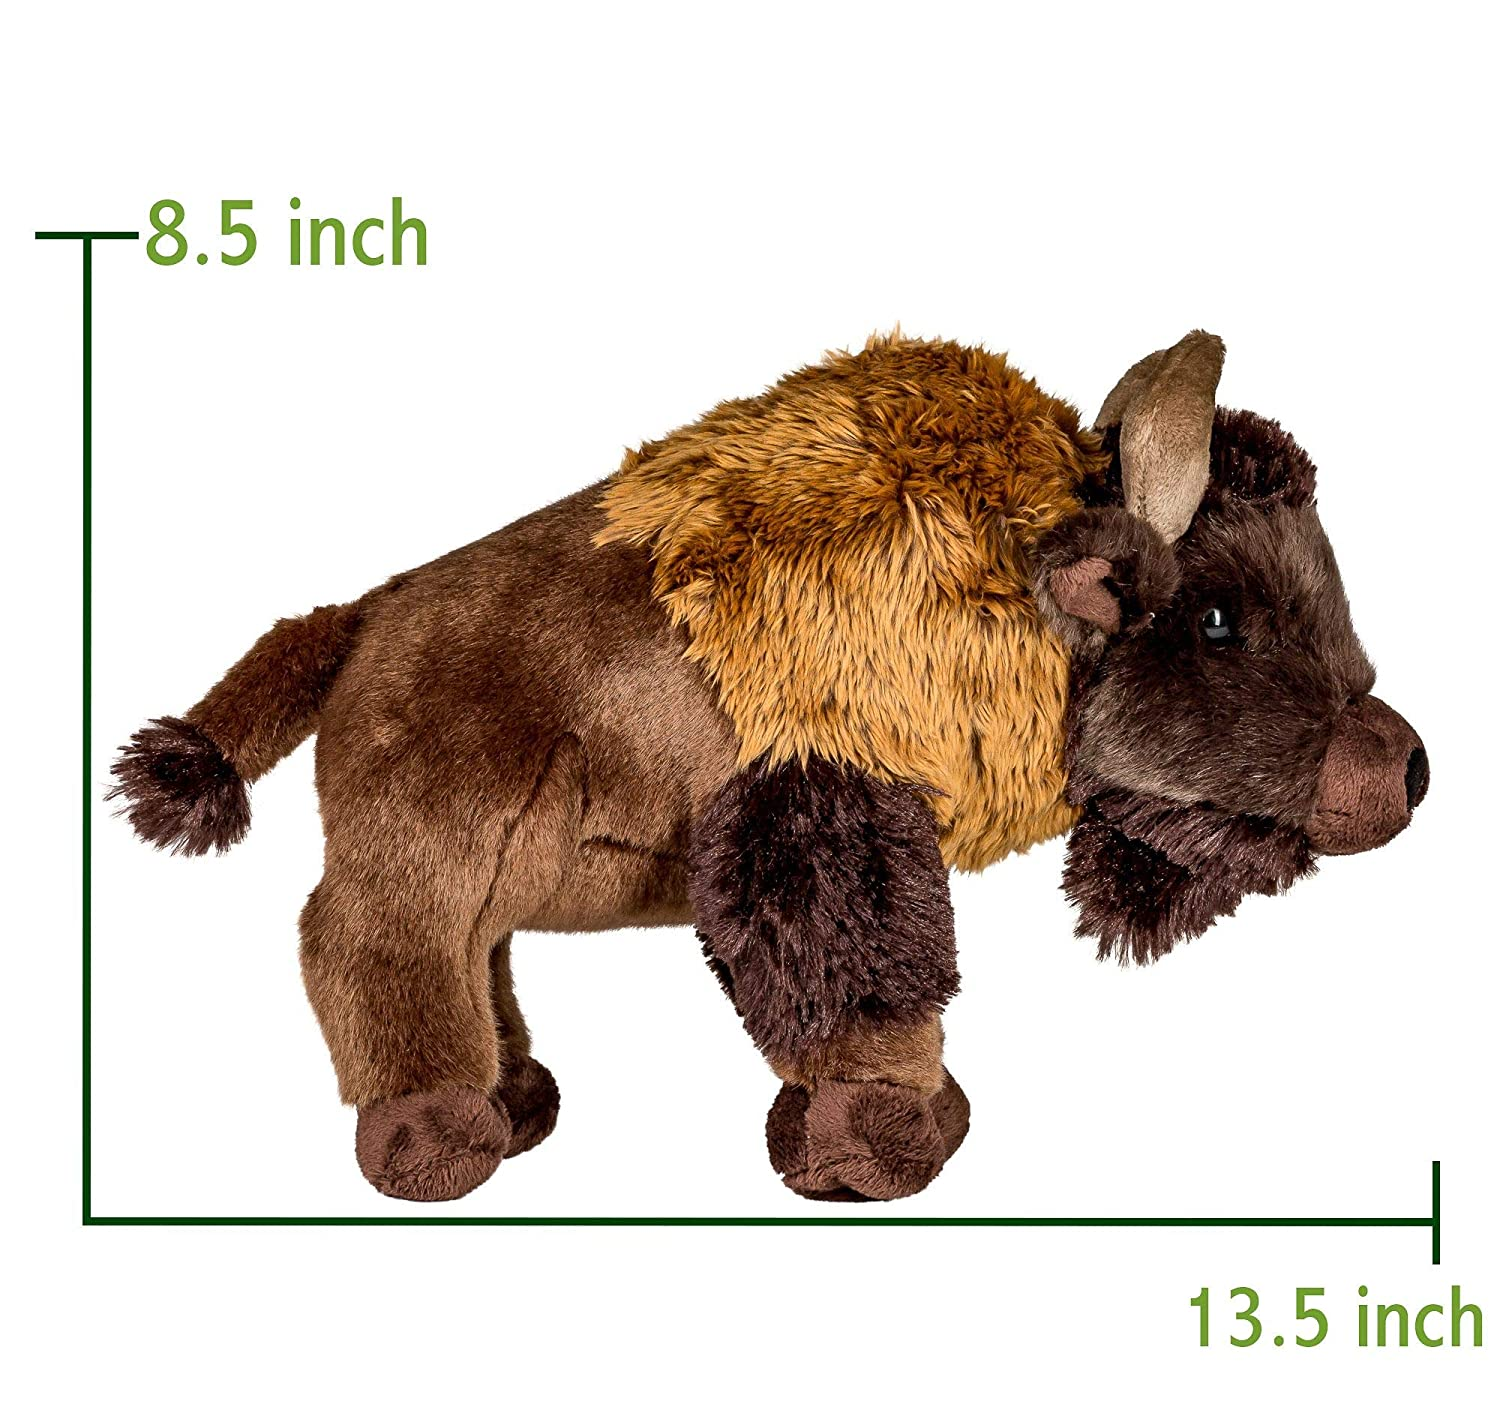 Wildlife Tree 13 Inch Stuffed Buffalo Plush Floppy Bison Animal Kingdom Collection